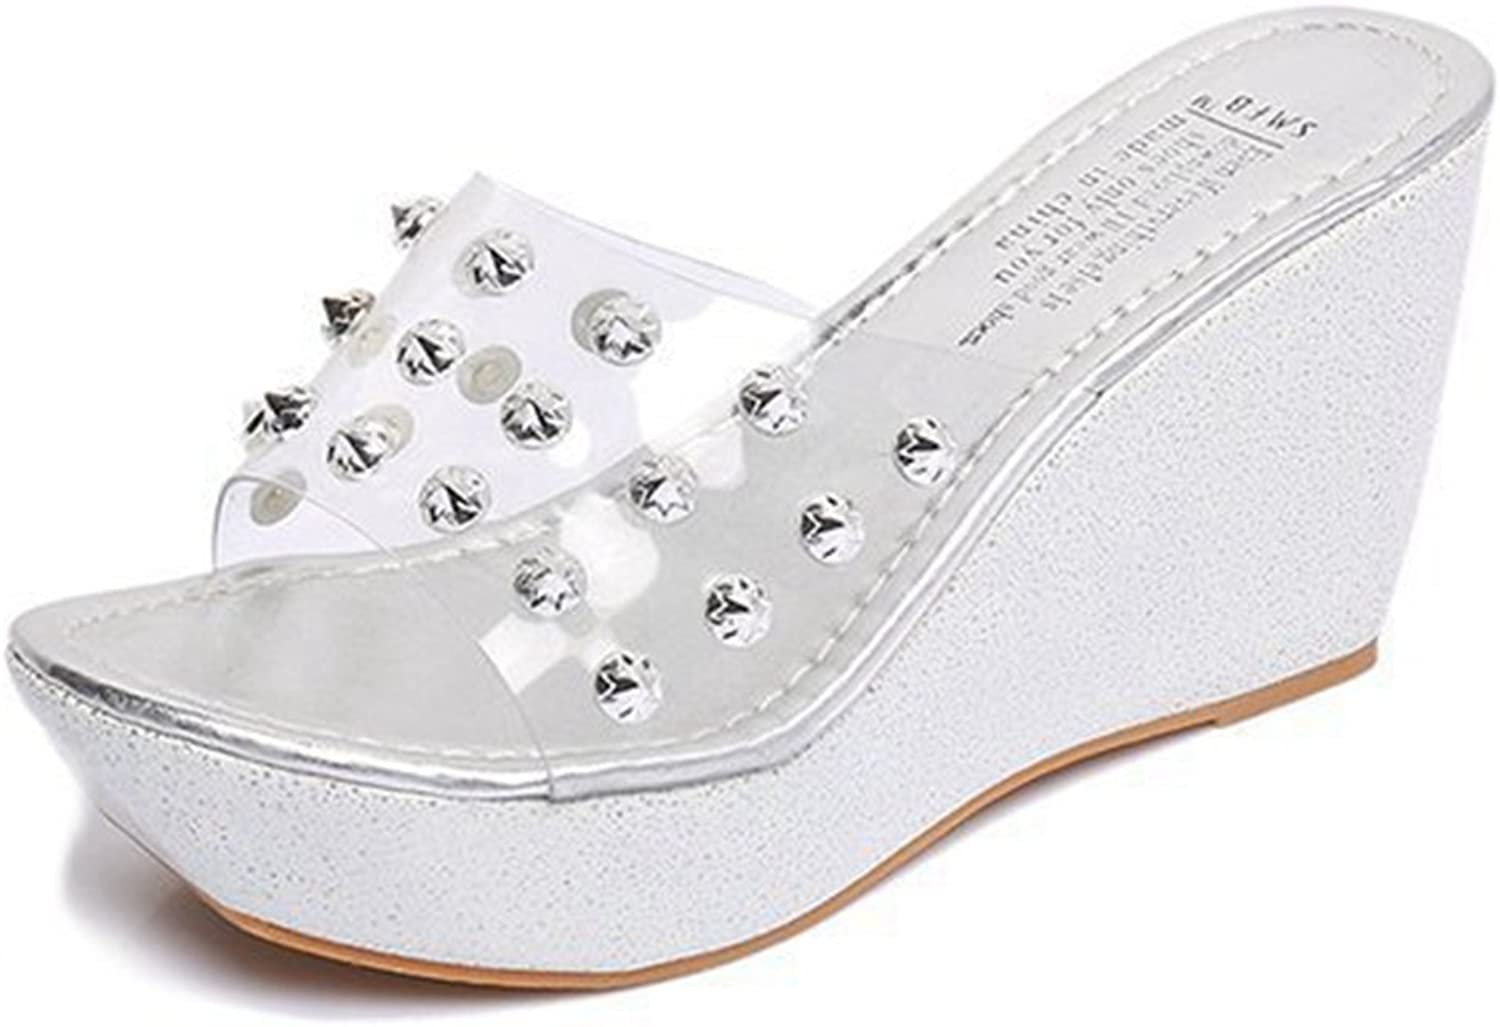 CYBLING Women Wedges Slides Sandals Bling Sequined Summer Outdoor Open Toe Slippers